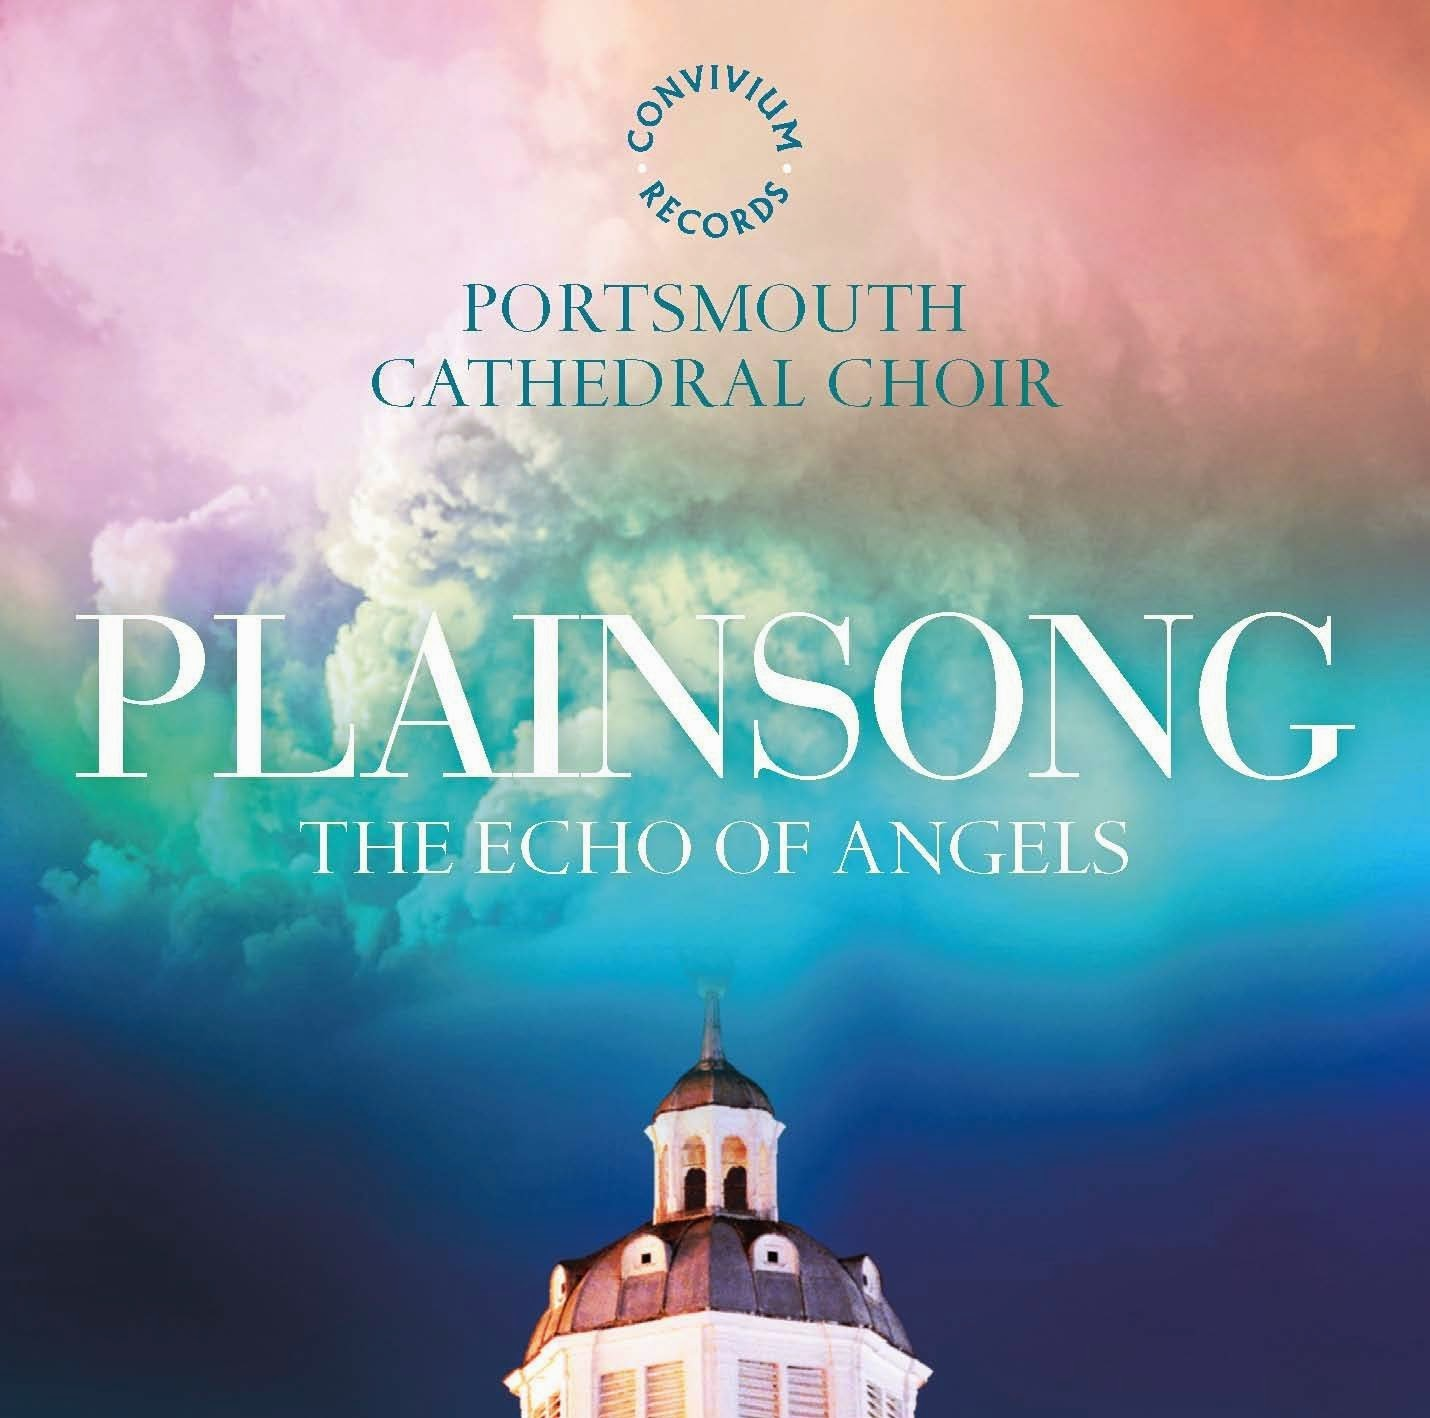 Plainsong - Portsmouth Cathedral Choir